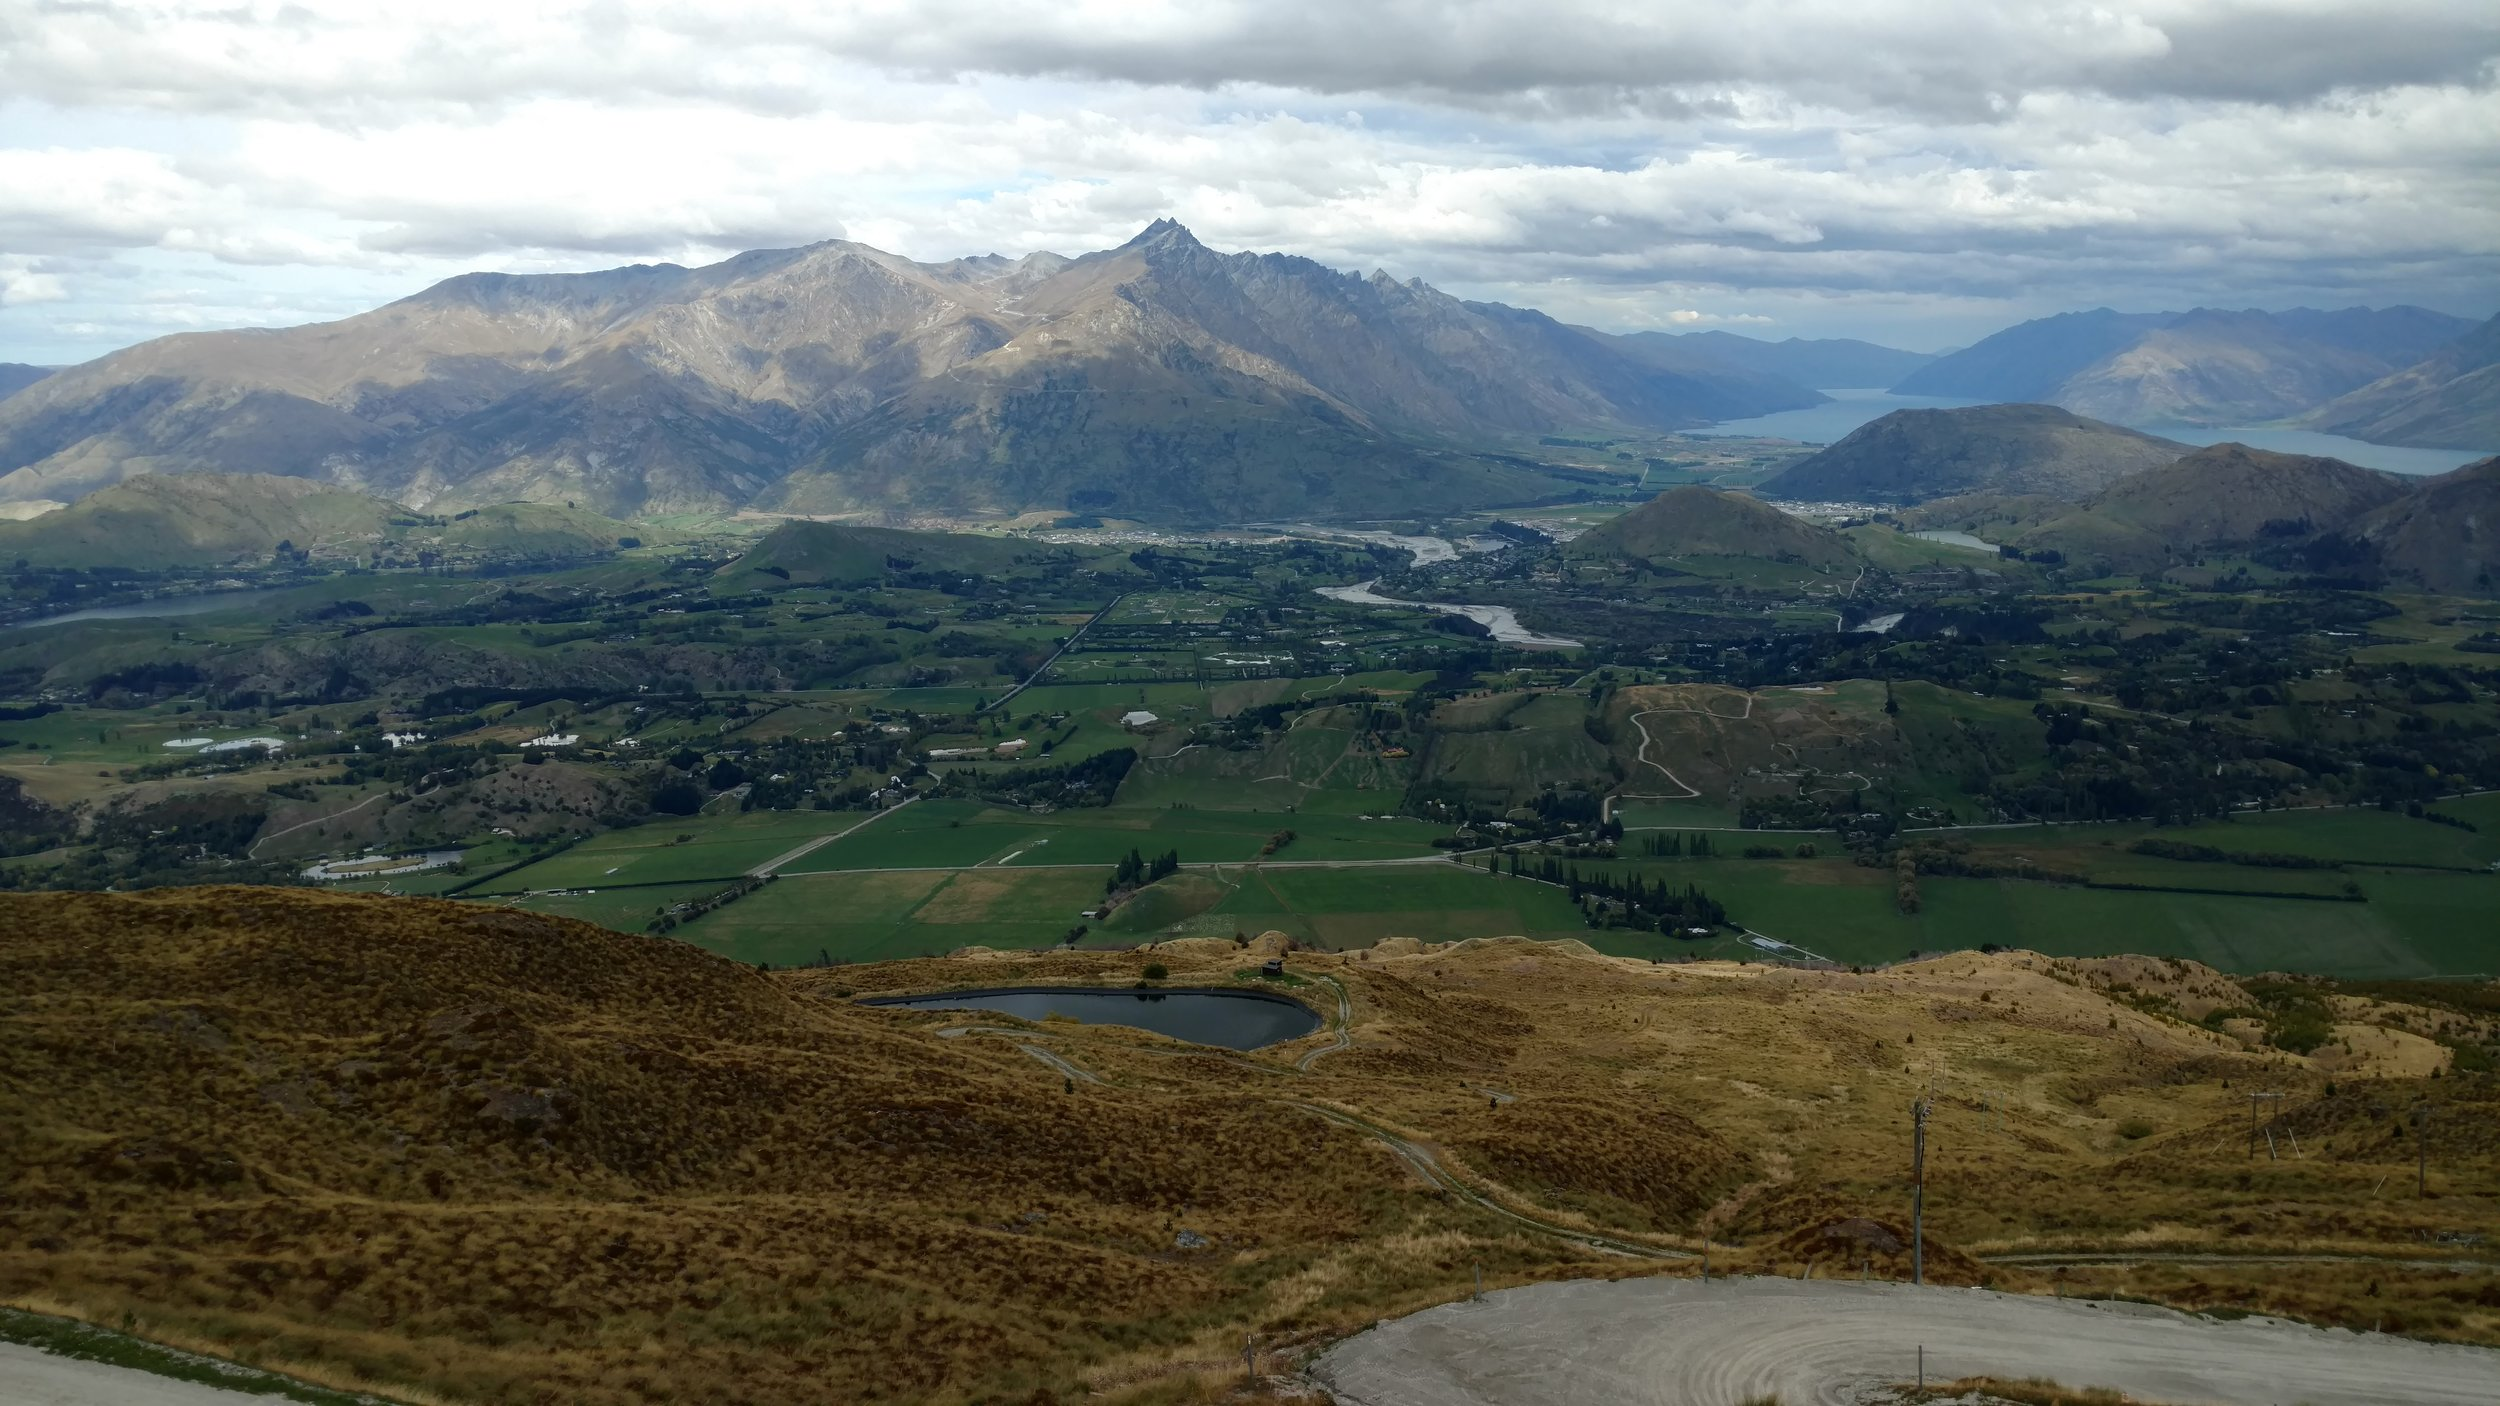 Trail view South of The Remarkables and Lake Wakatipu